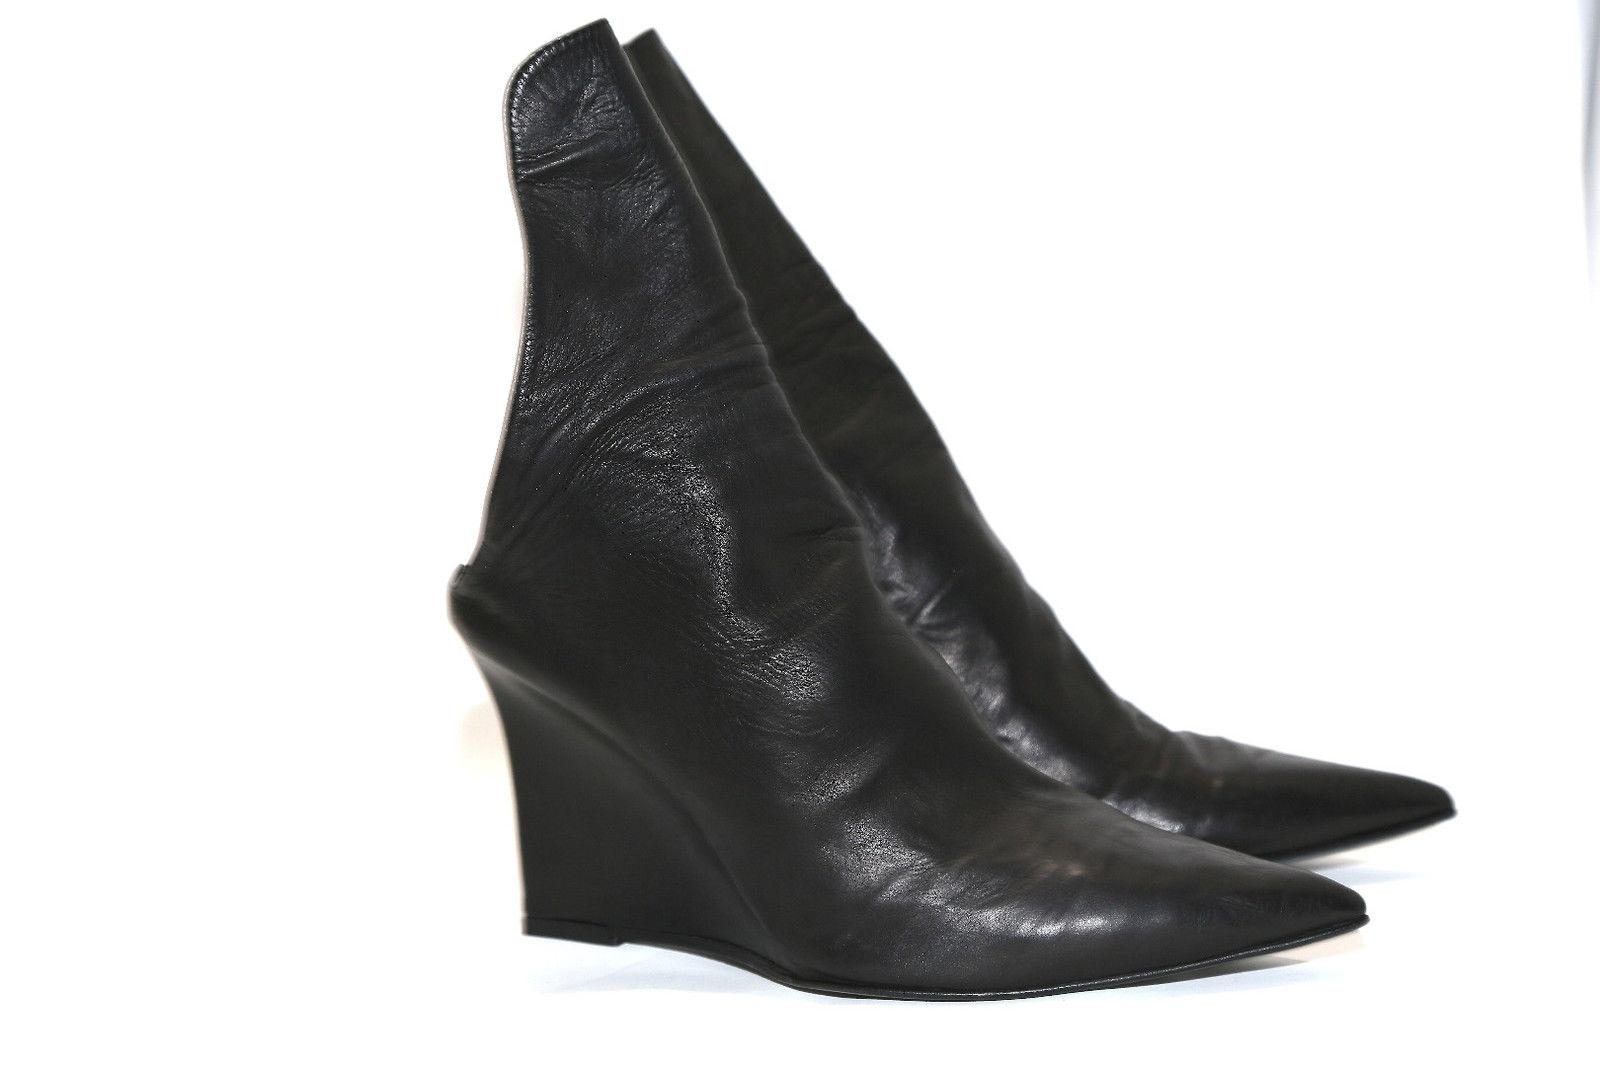 Ann Demeulemeester Black Wedge Boots sale visit official site cheap online shmWO6